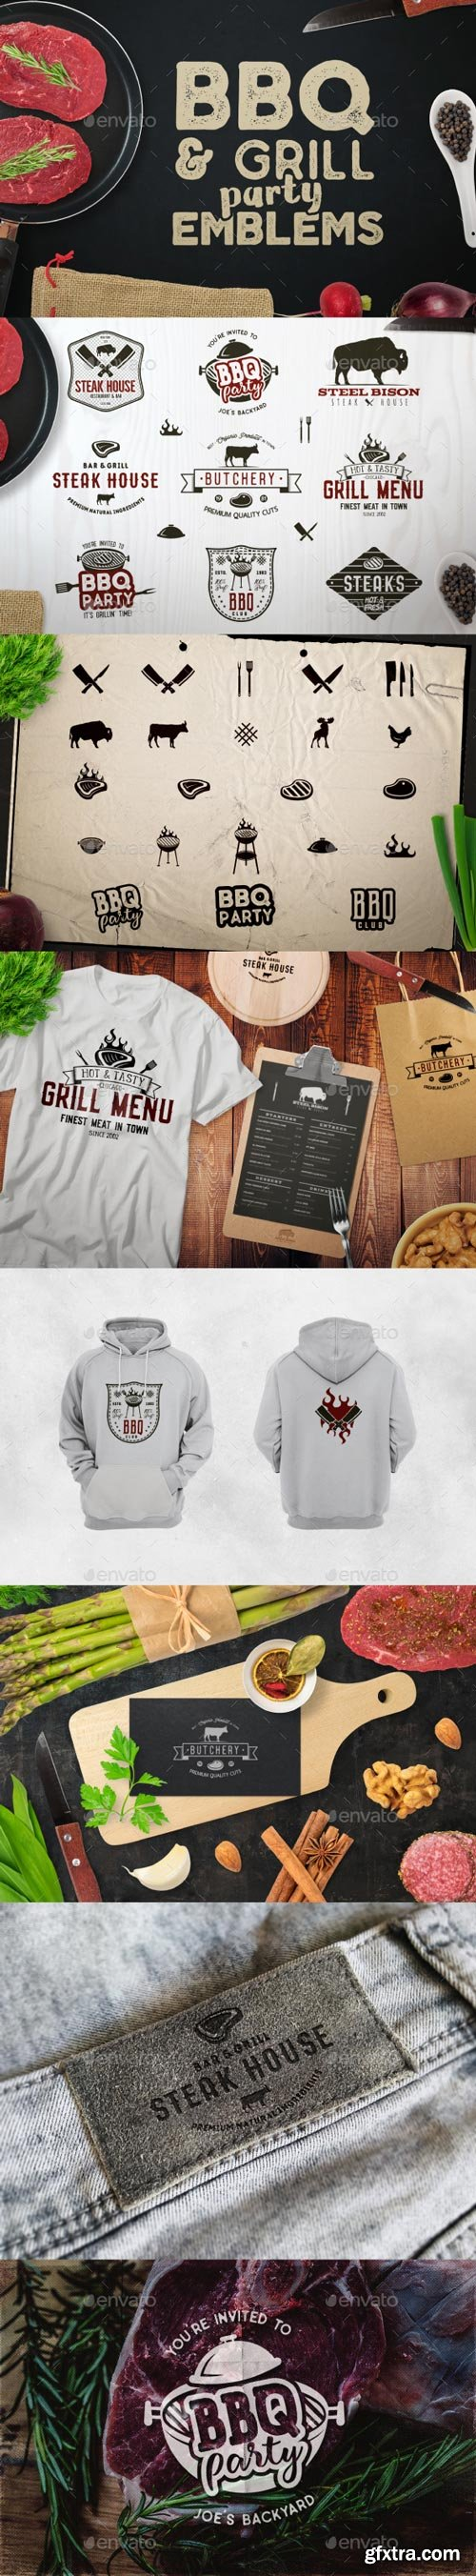 GraphicRiver - BBQ Logos & Grill Emblems Set - 20574610